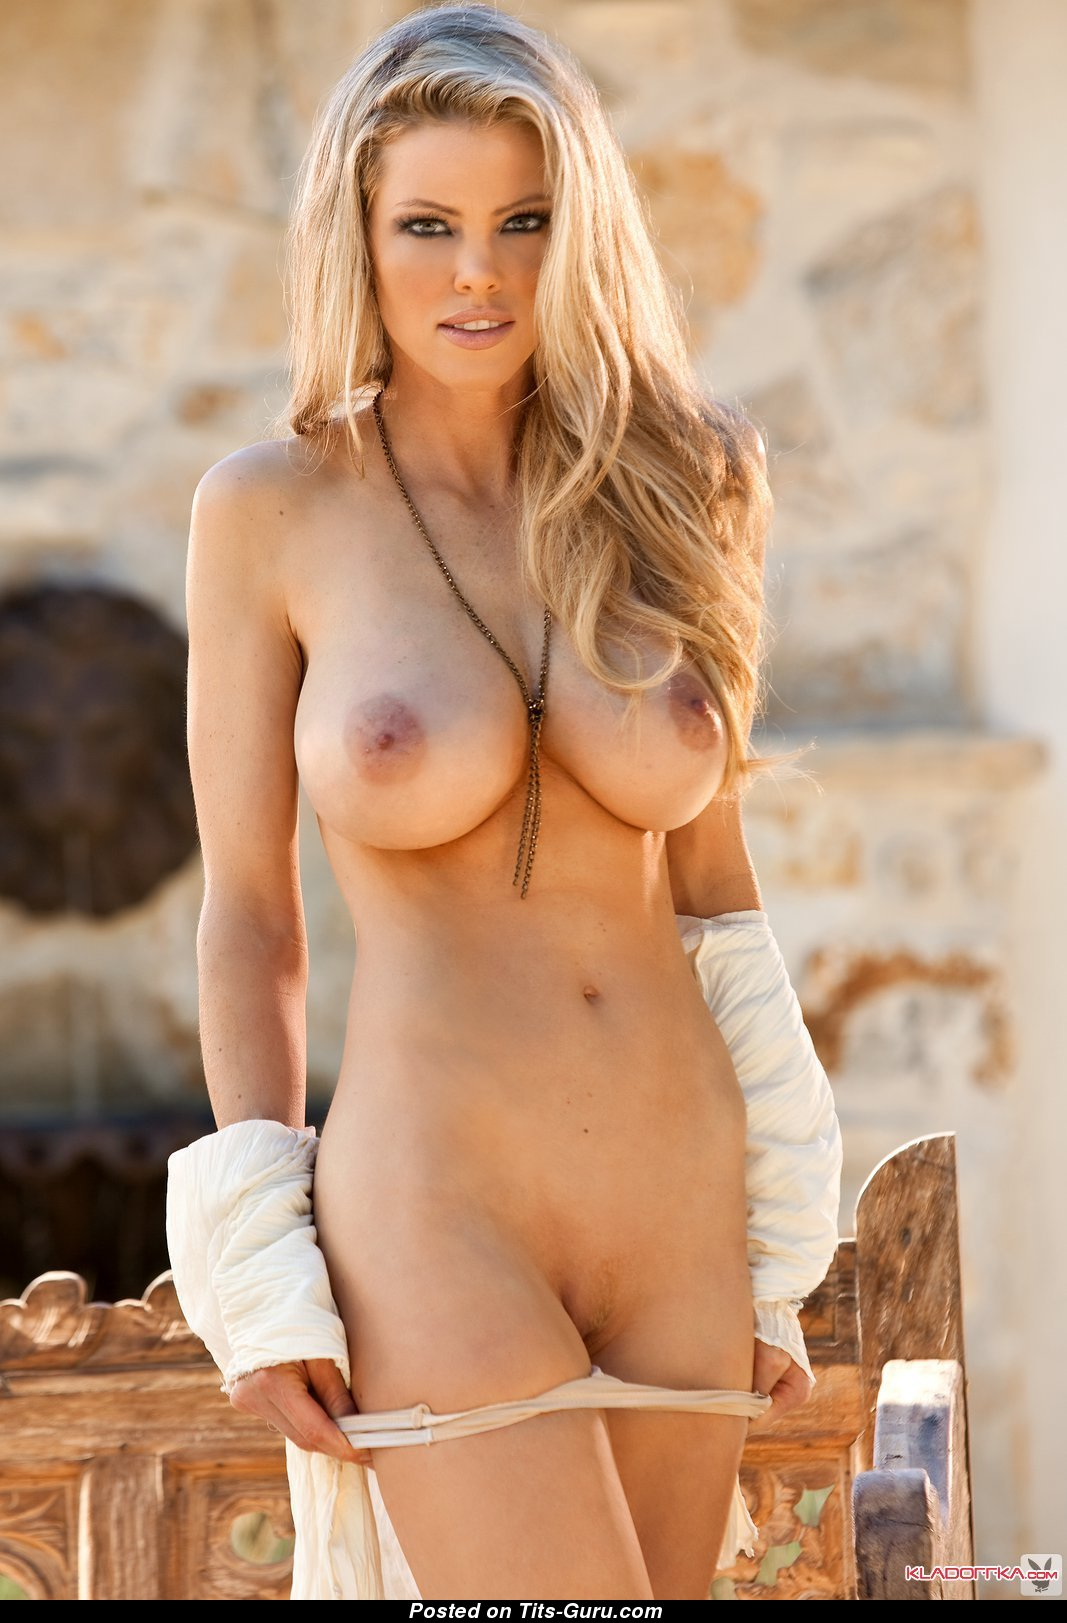 Jami Ferrell - Playboy Miss With Exposed Real C Size Tit -5635